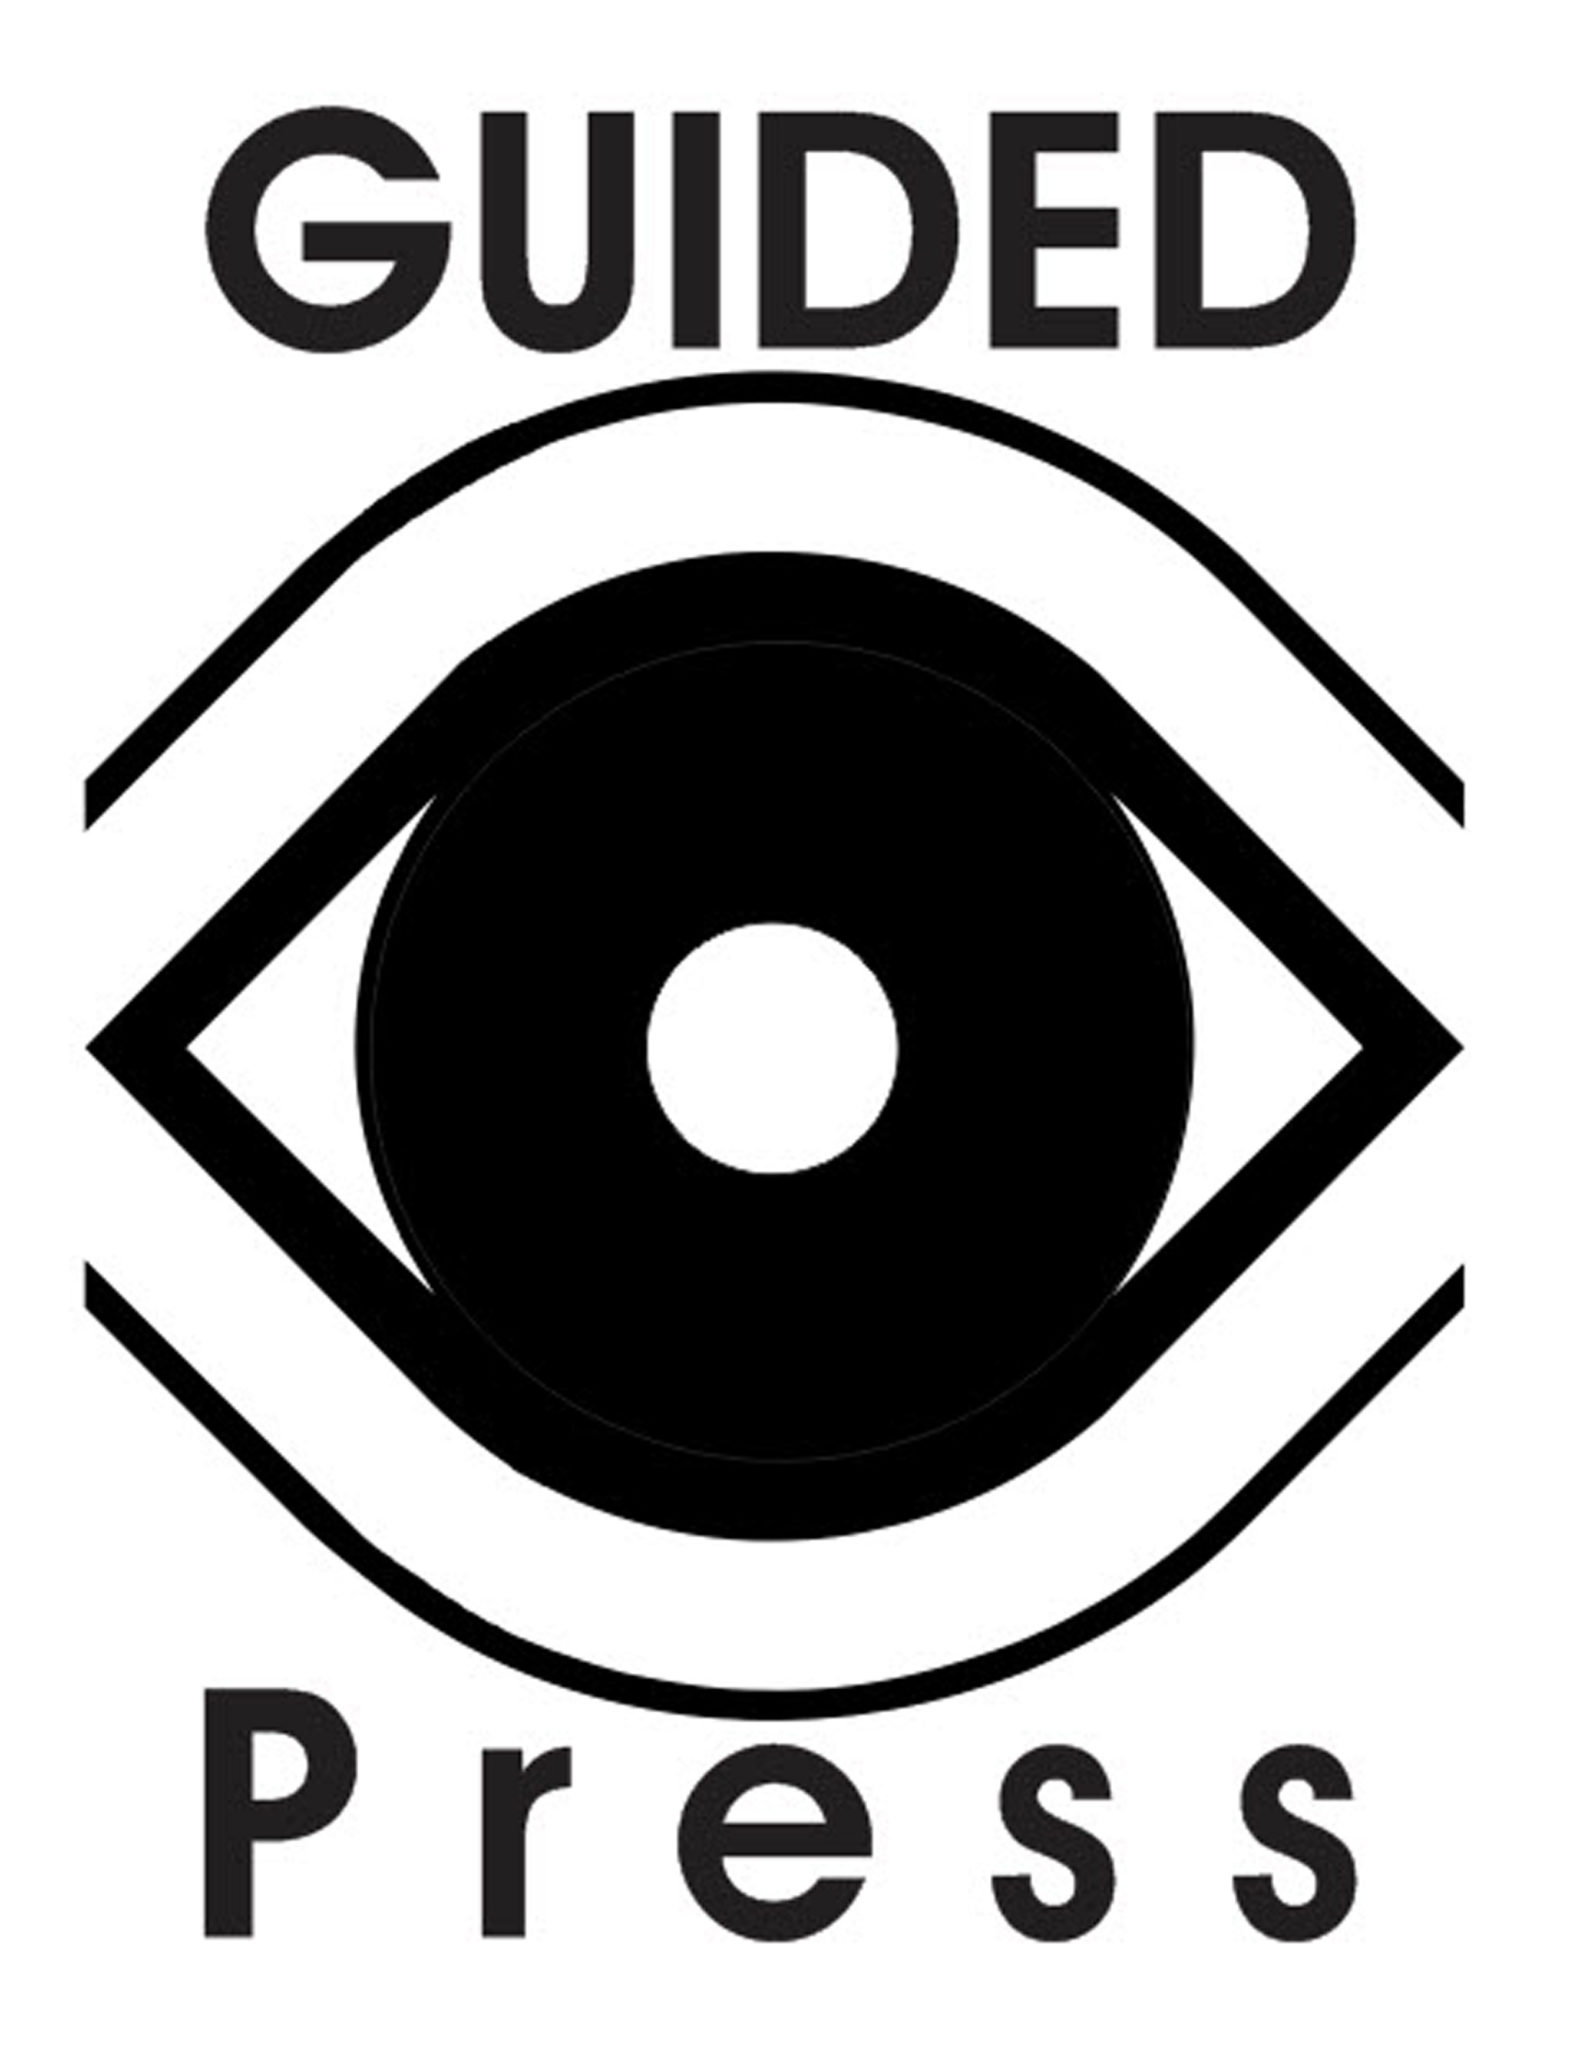 publisher: Guided Press logo: 2550x3300 px 300pdi